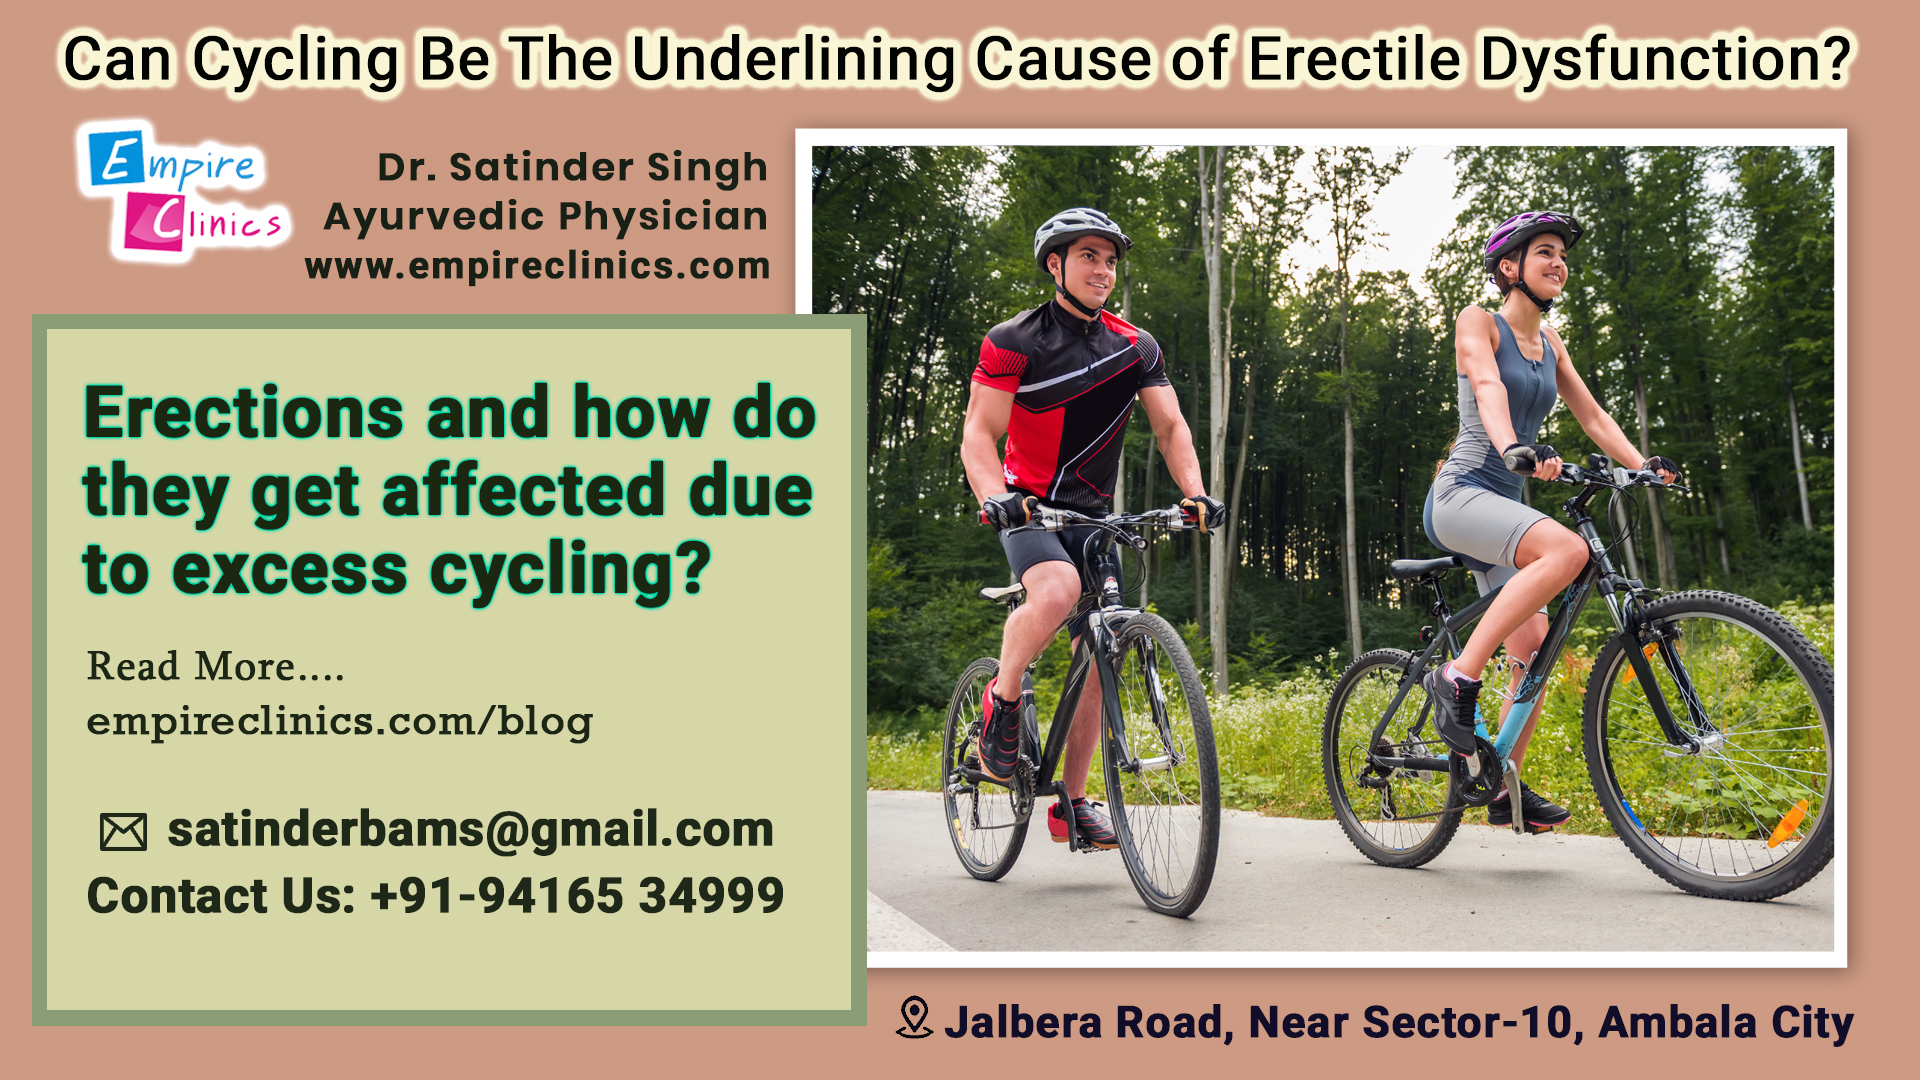 Can Cycling Be The Cause of Erectile Dysfunction Problem?